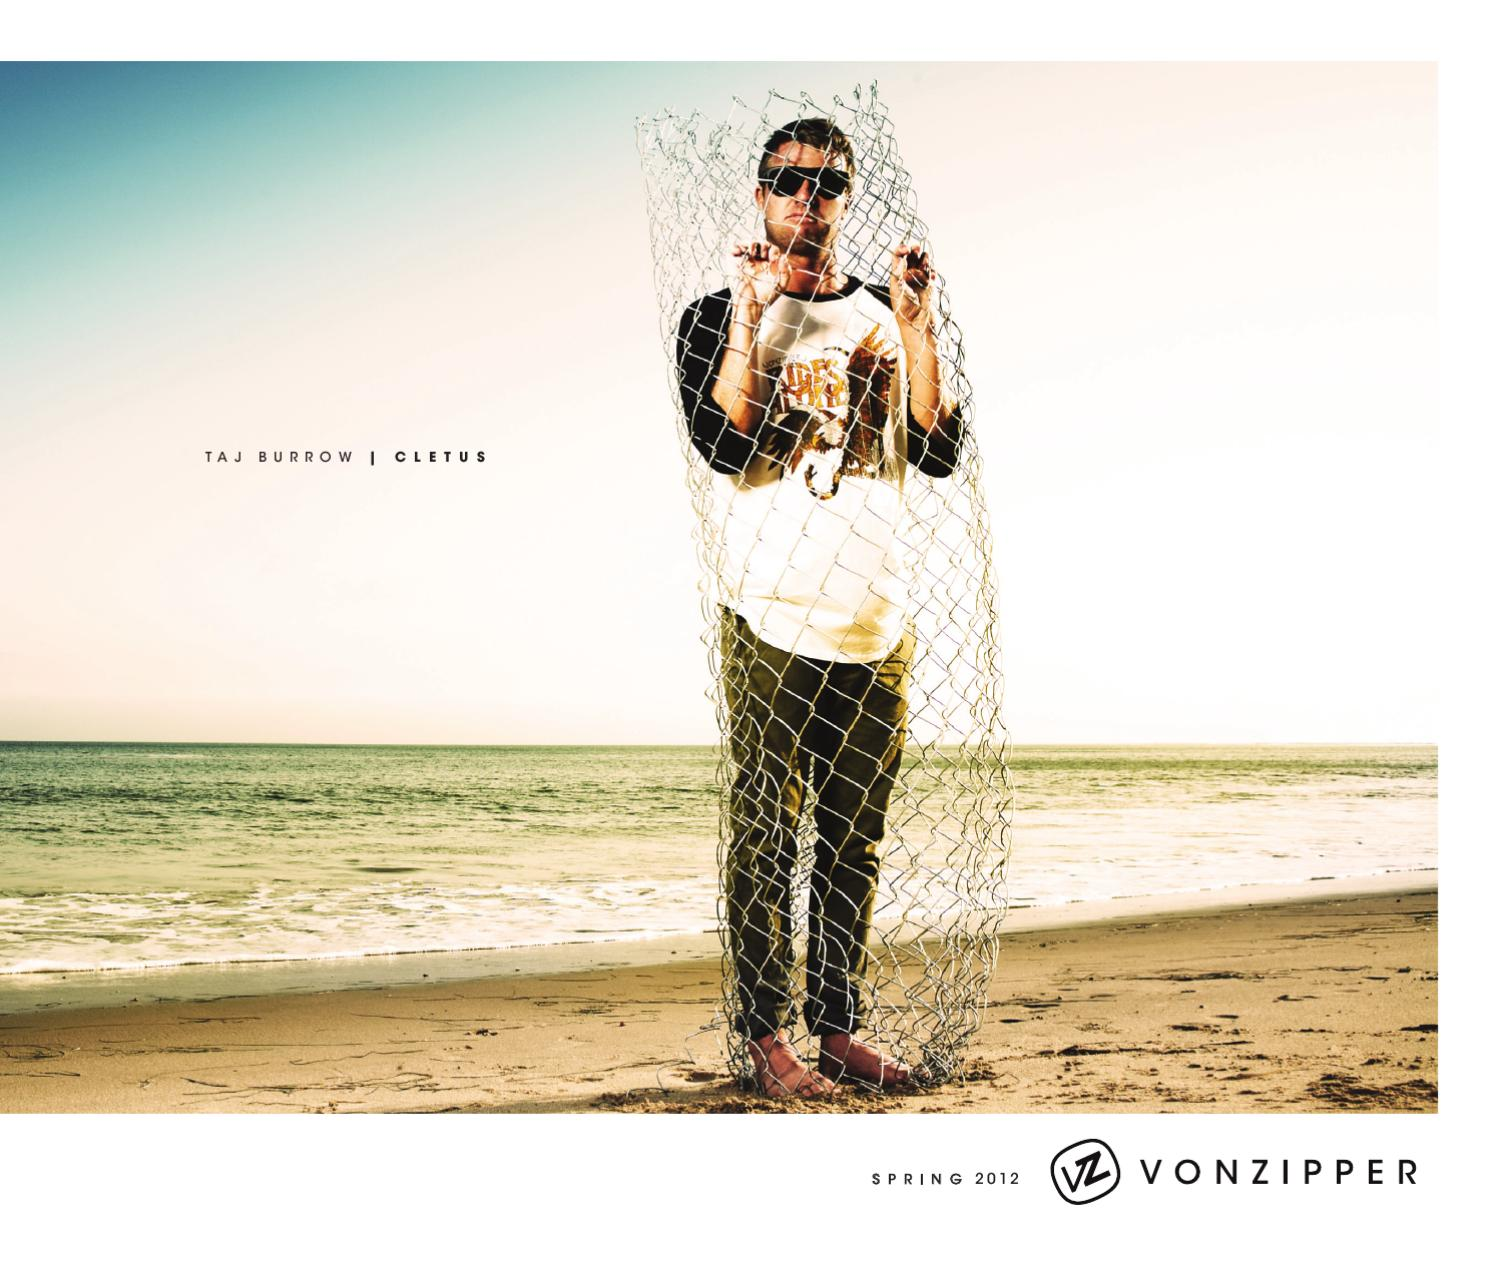 303ed474815f VonZipper Spring Sunglasses 2012 by VonZipper - issuu